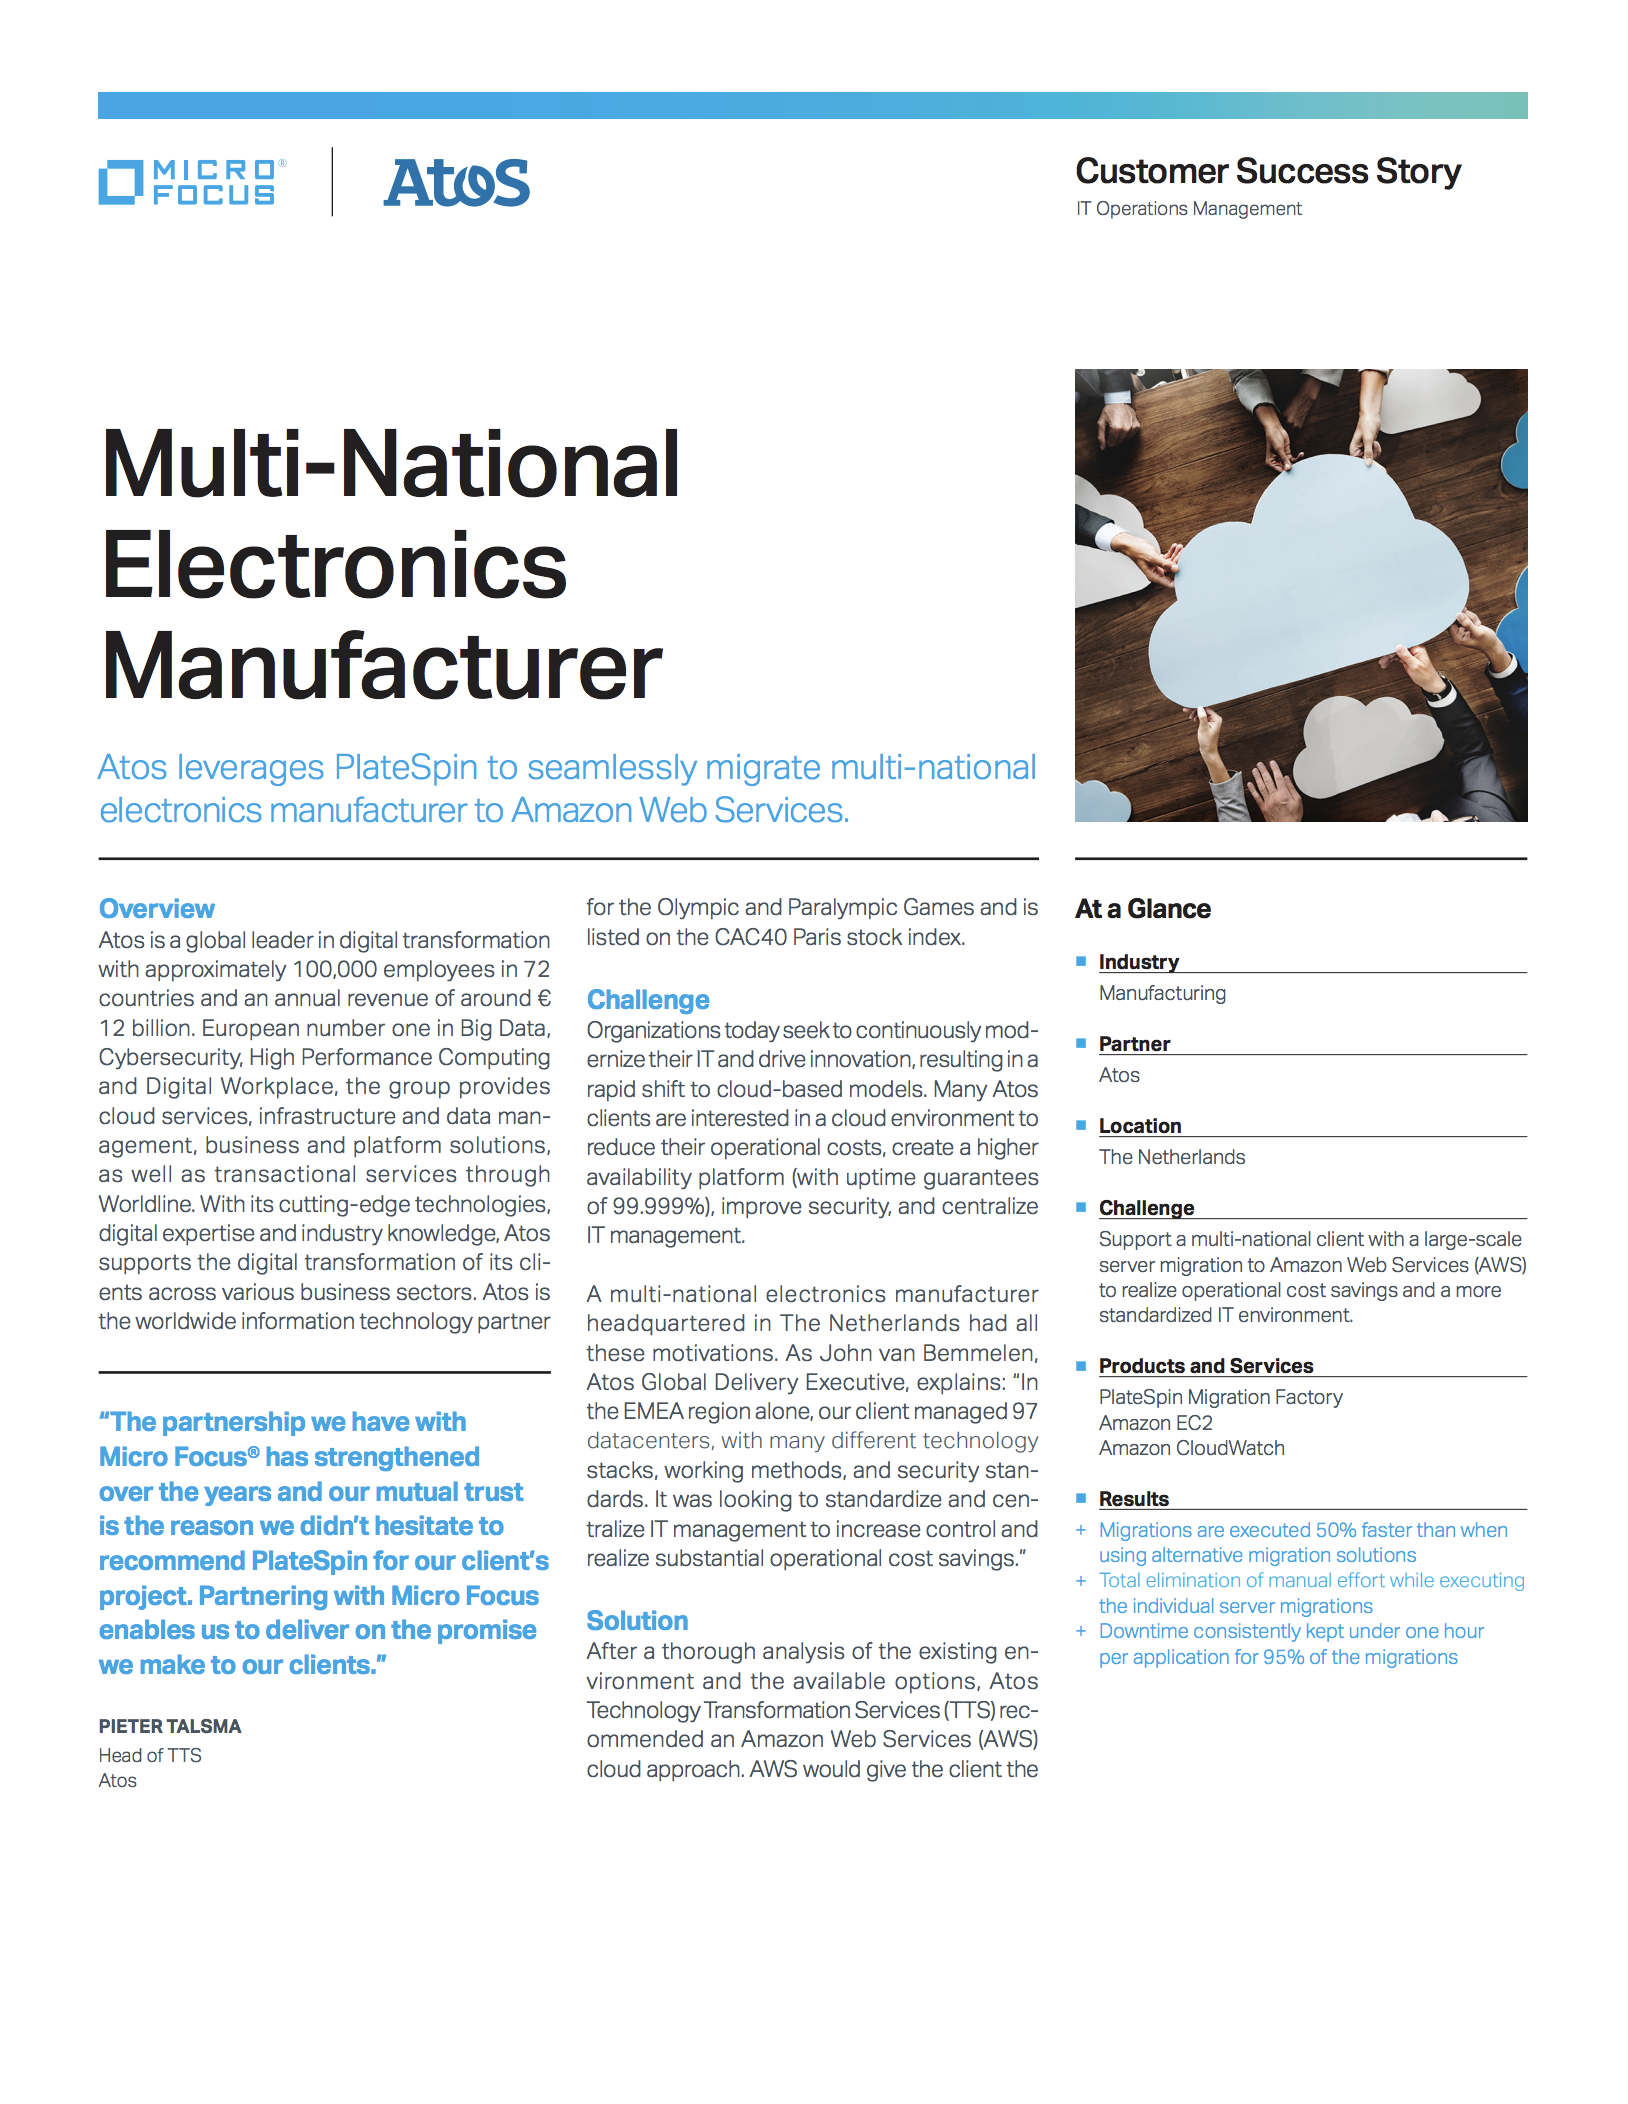 Multi-national Electronics Manufacturer